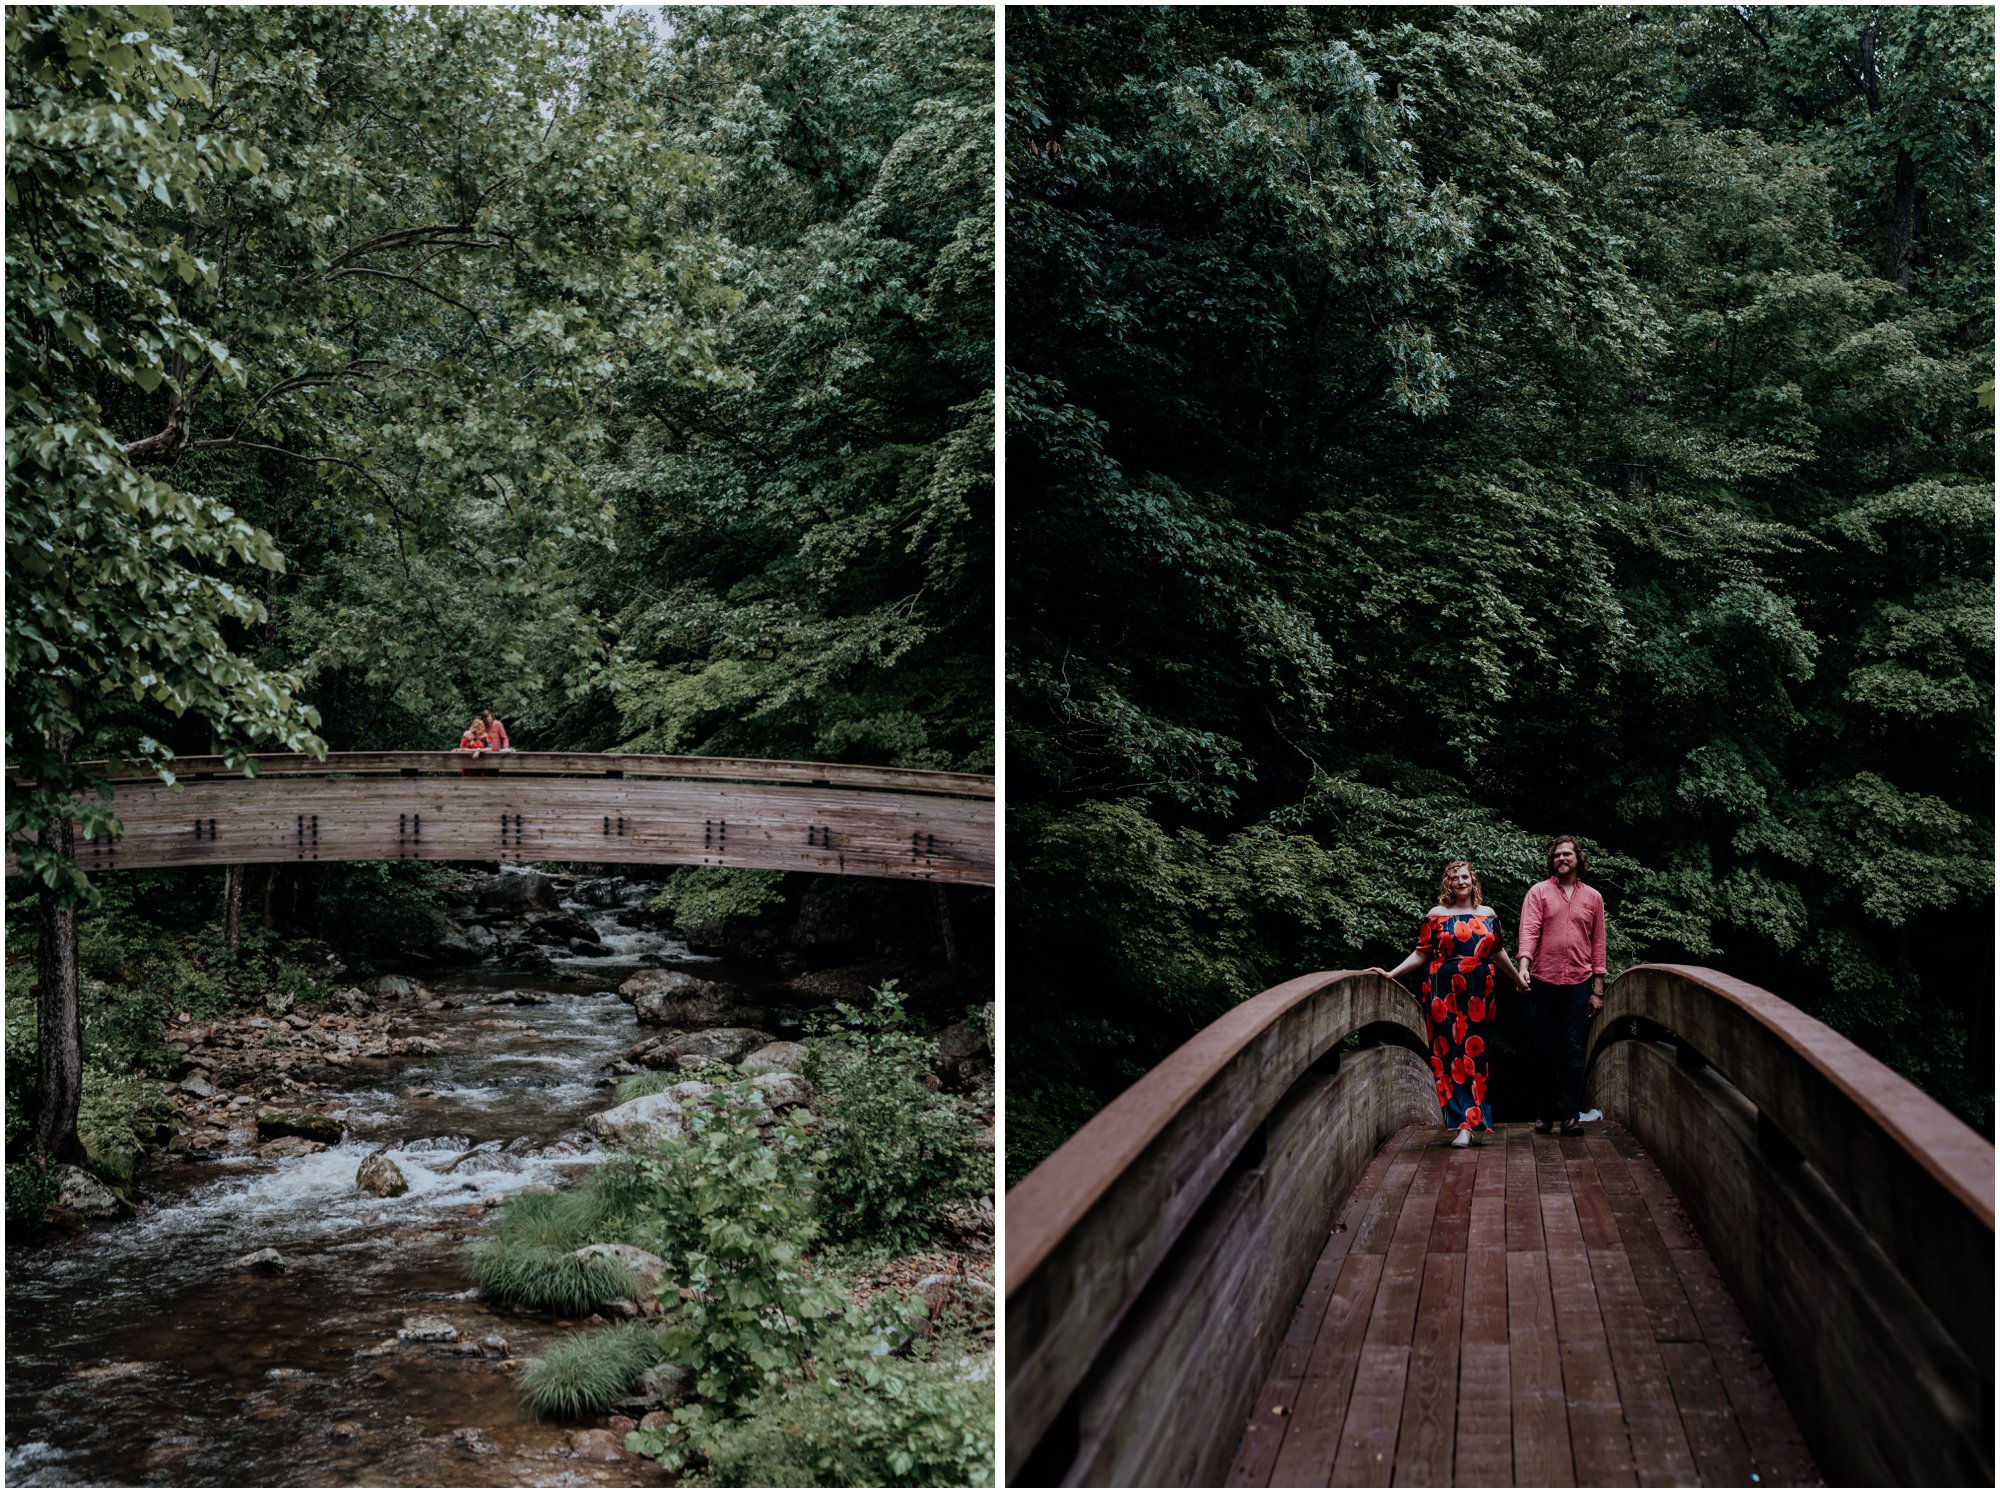 Crabtree Falls Waterfalls Adventure Engagement Session in the Blue Ridge Mountains